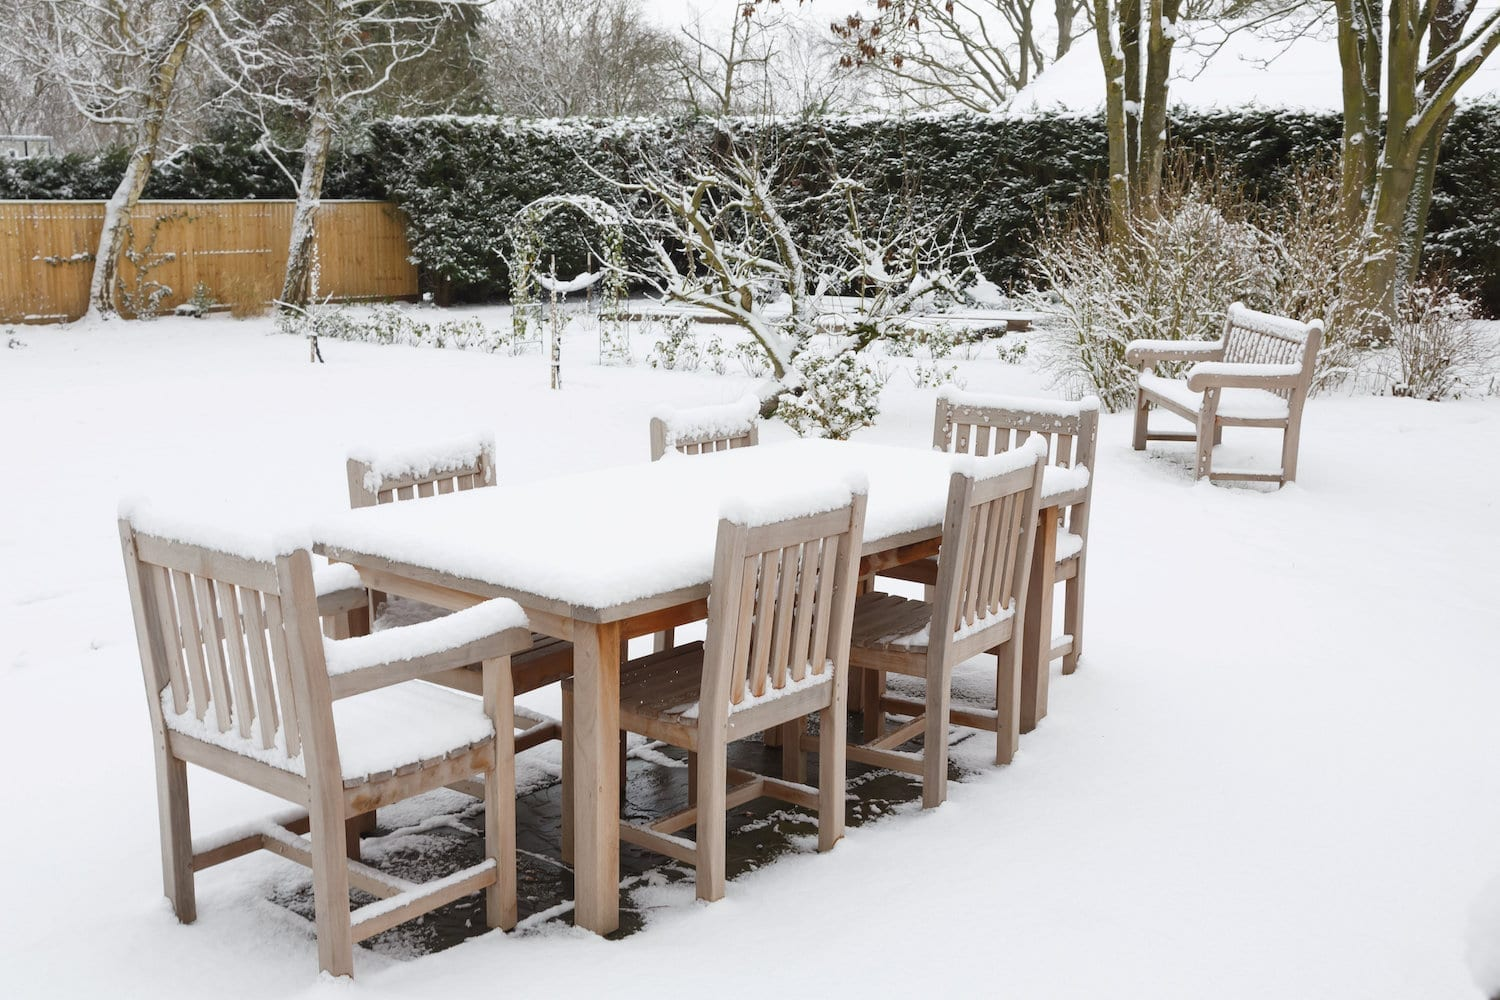 Benefits Of Storage Units To Protect Your Outdoor Furniture & Equipment From Winter